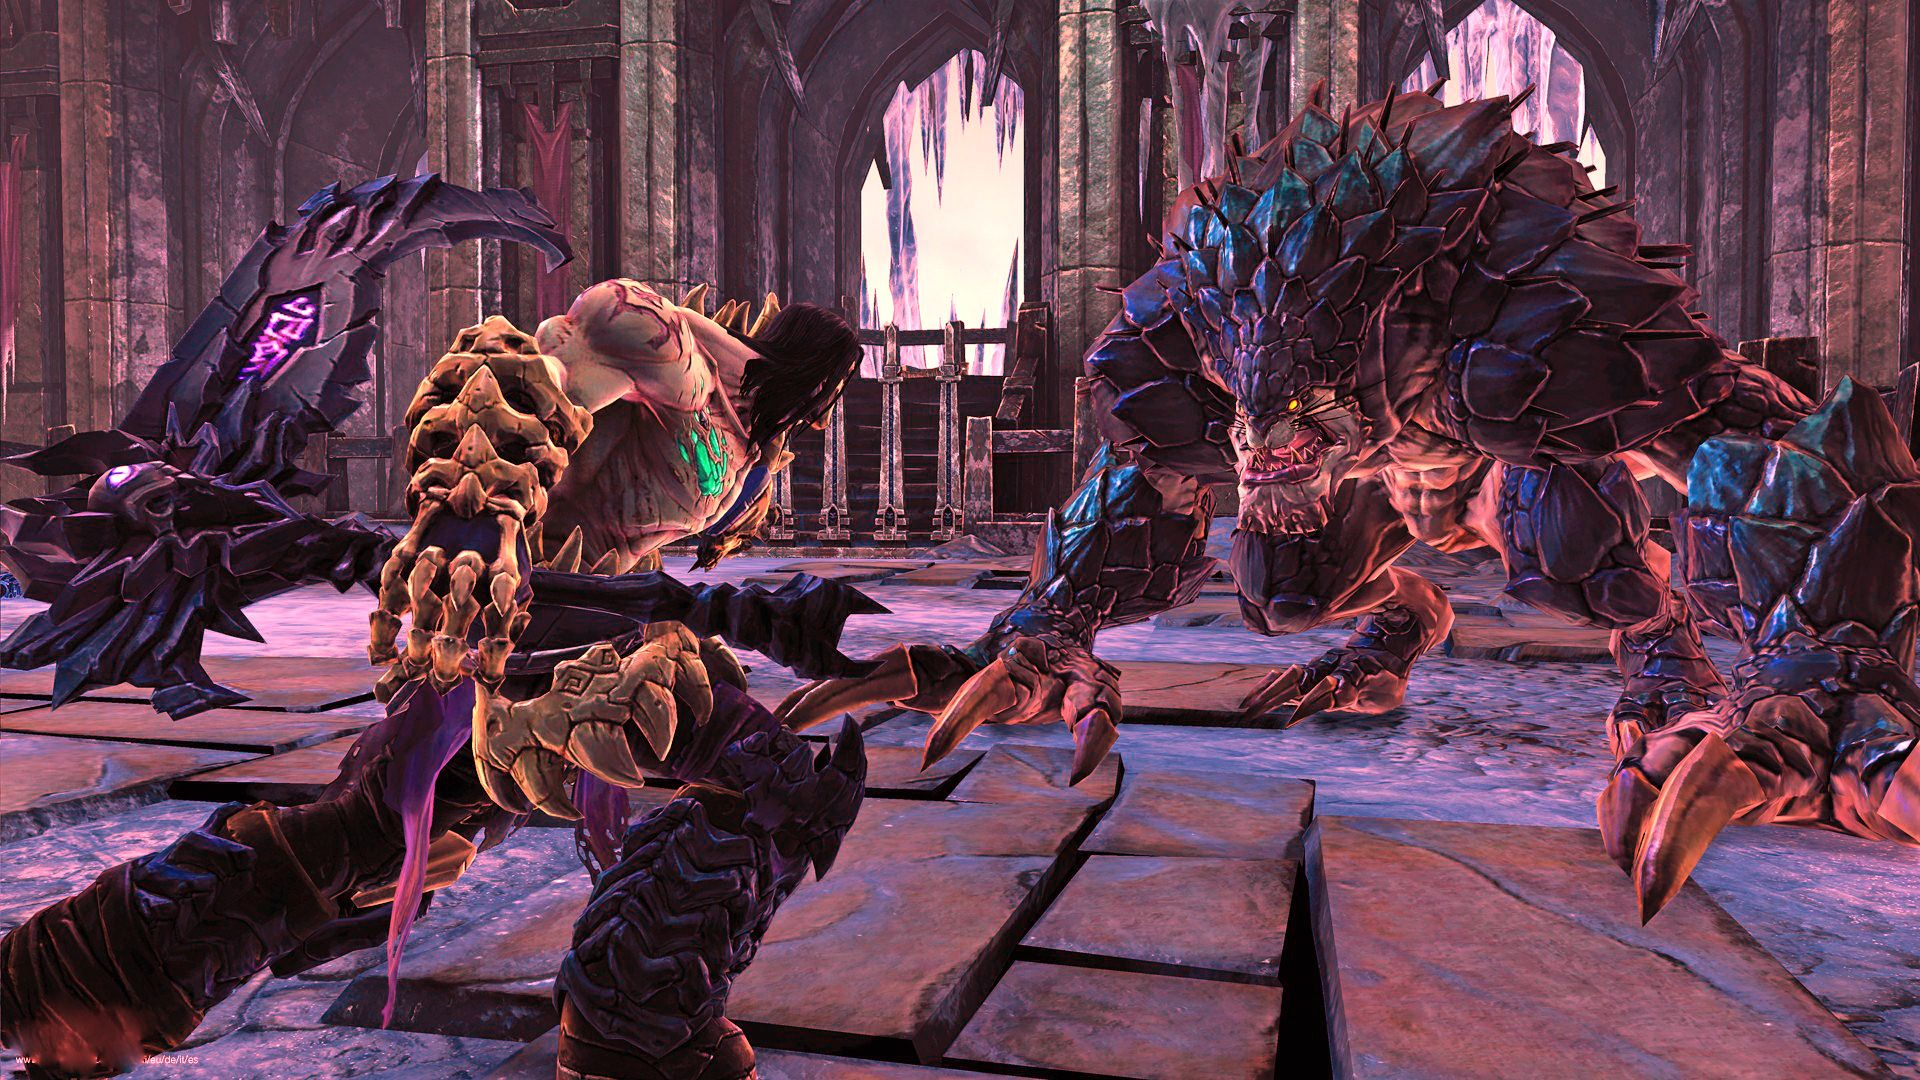 darksiders images wrath of war hd wallpaper and background photos